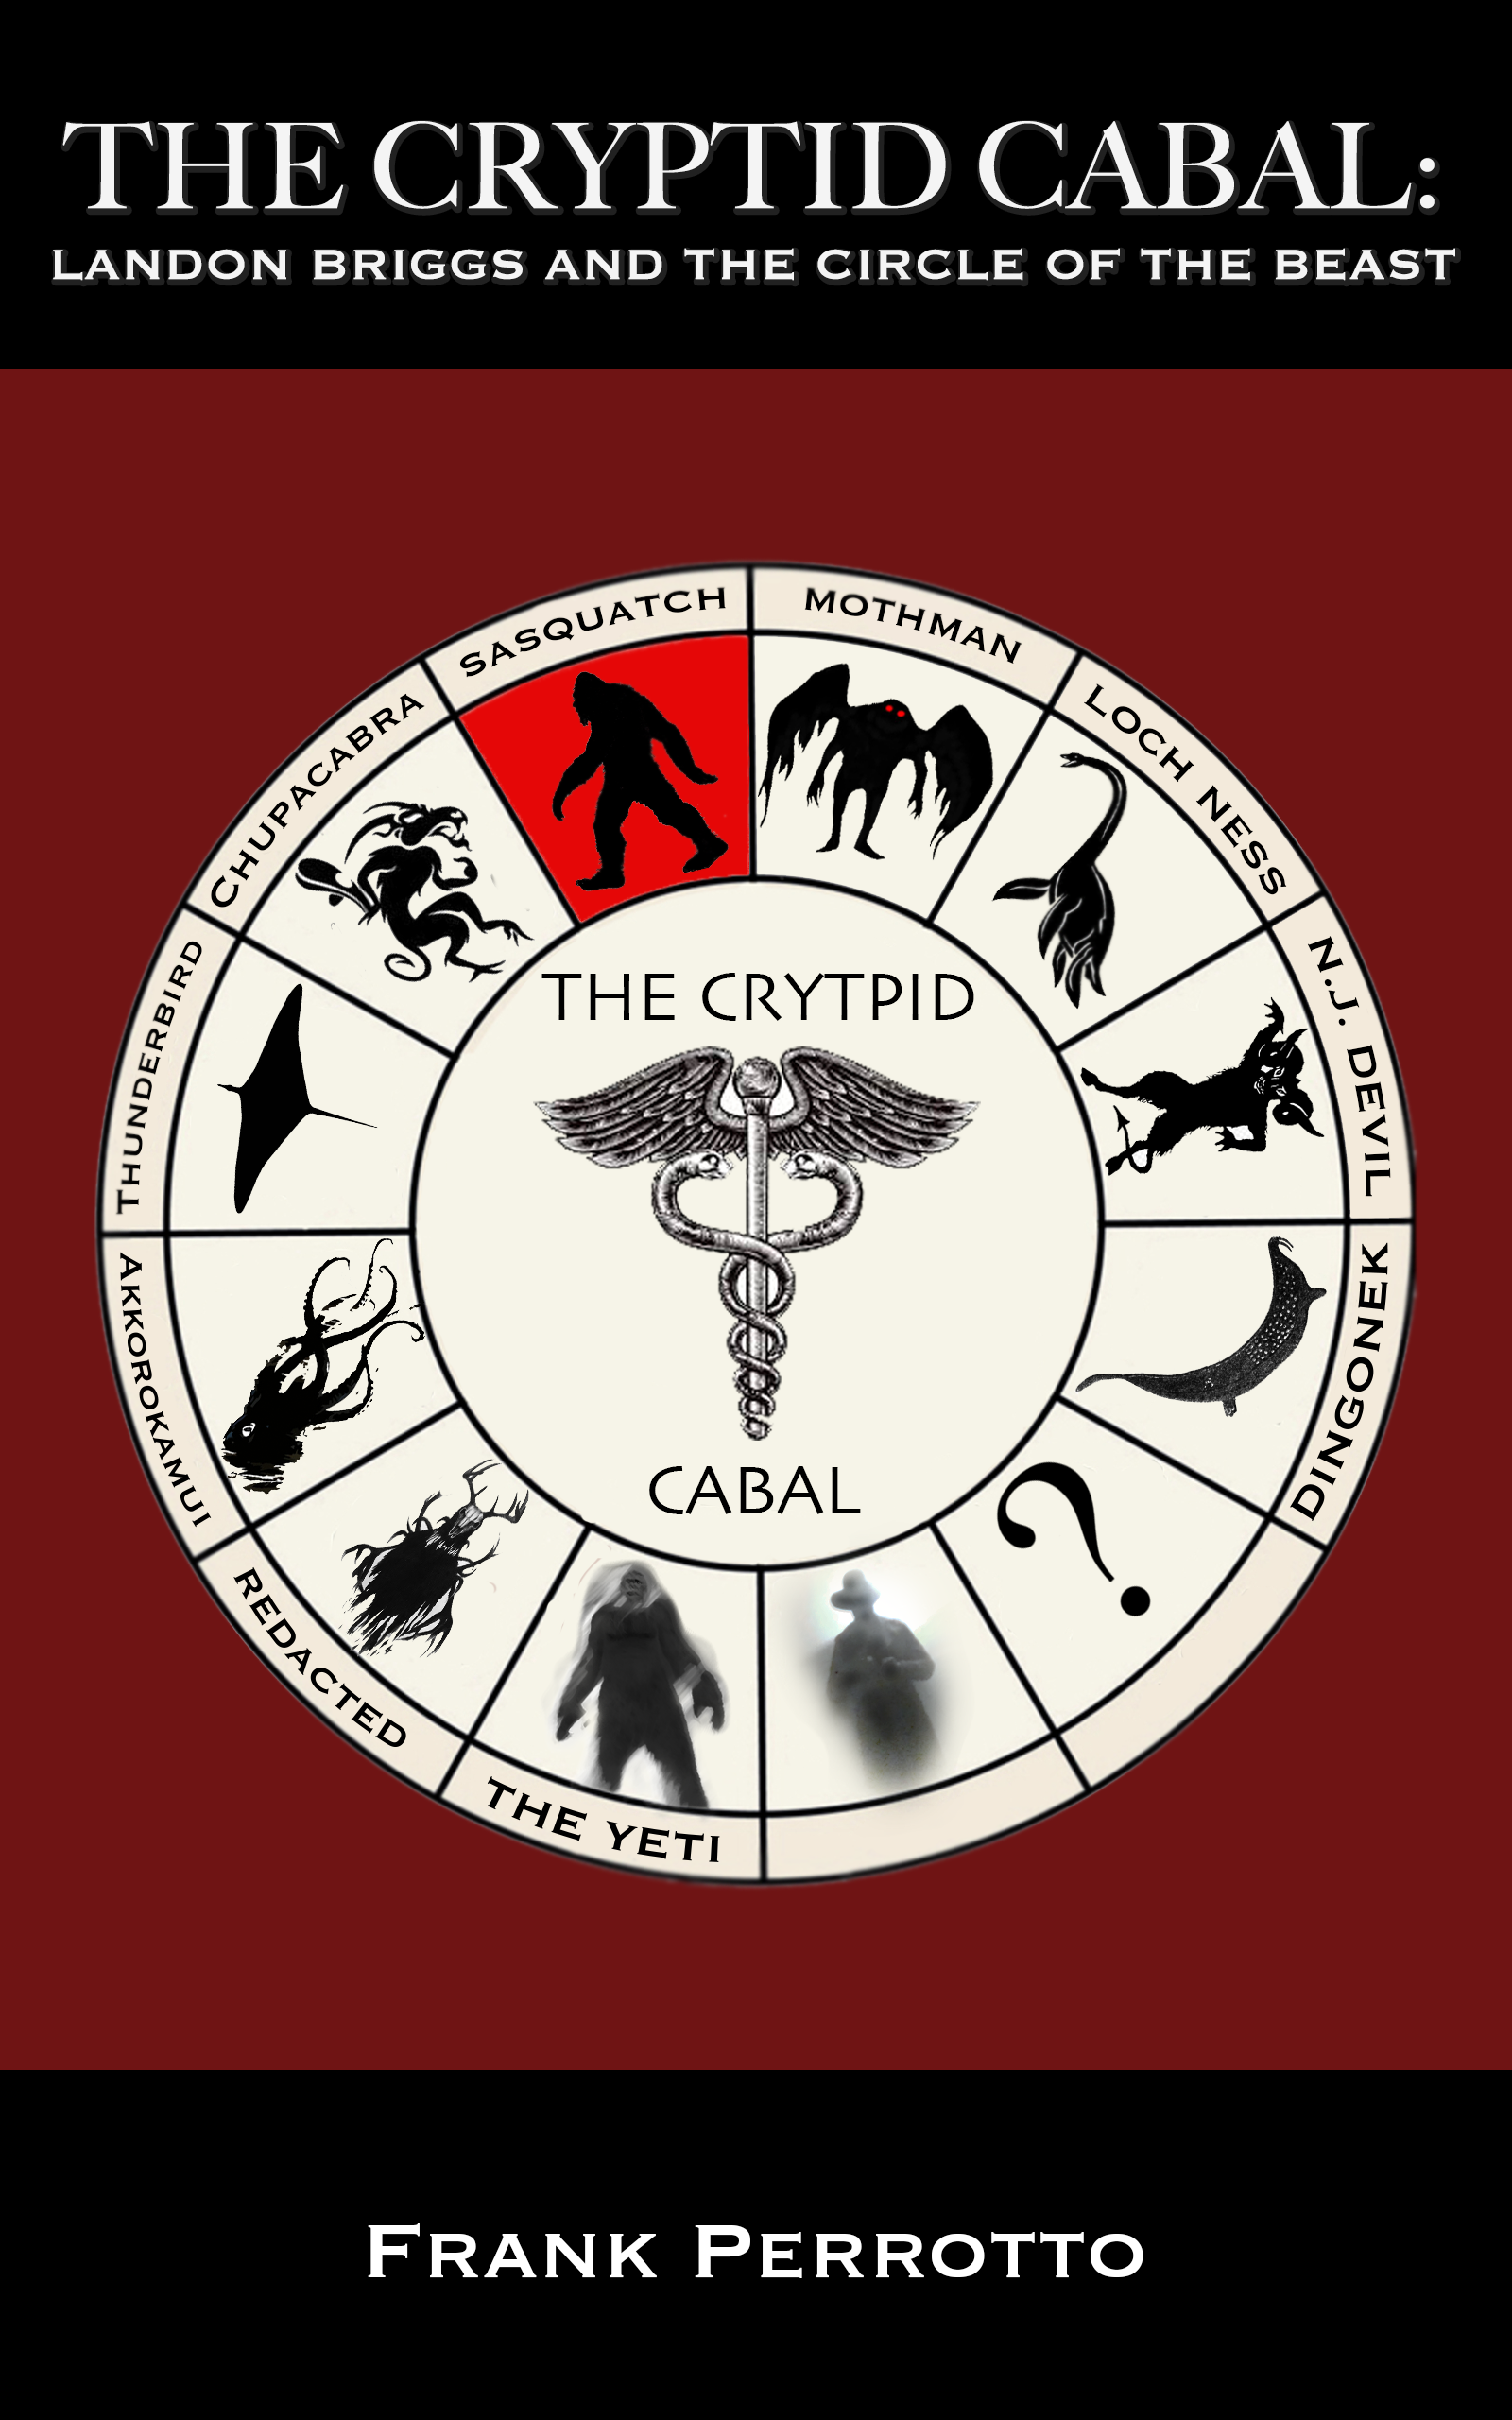 The Cryptid Cabal: Landon Briggs and the Circle of the Beast